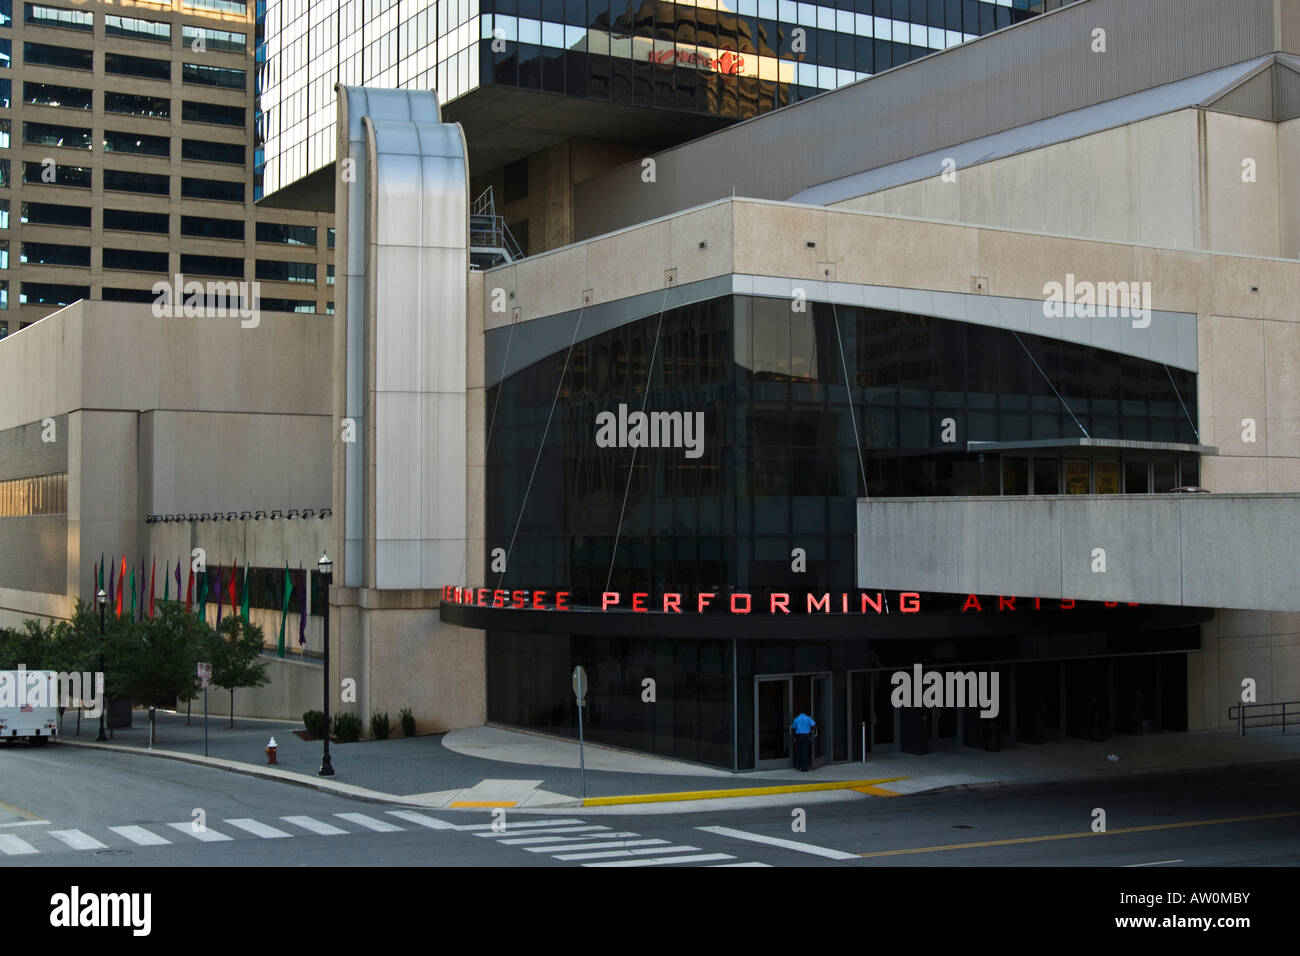 Performing Art Center in Nashville, Tennessee - Stock Image